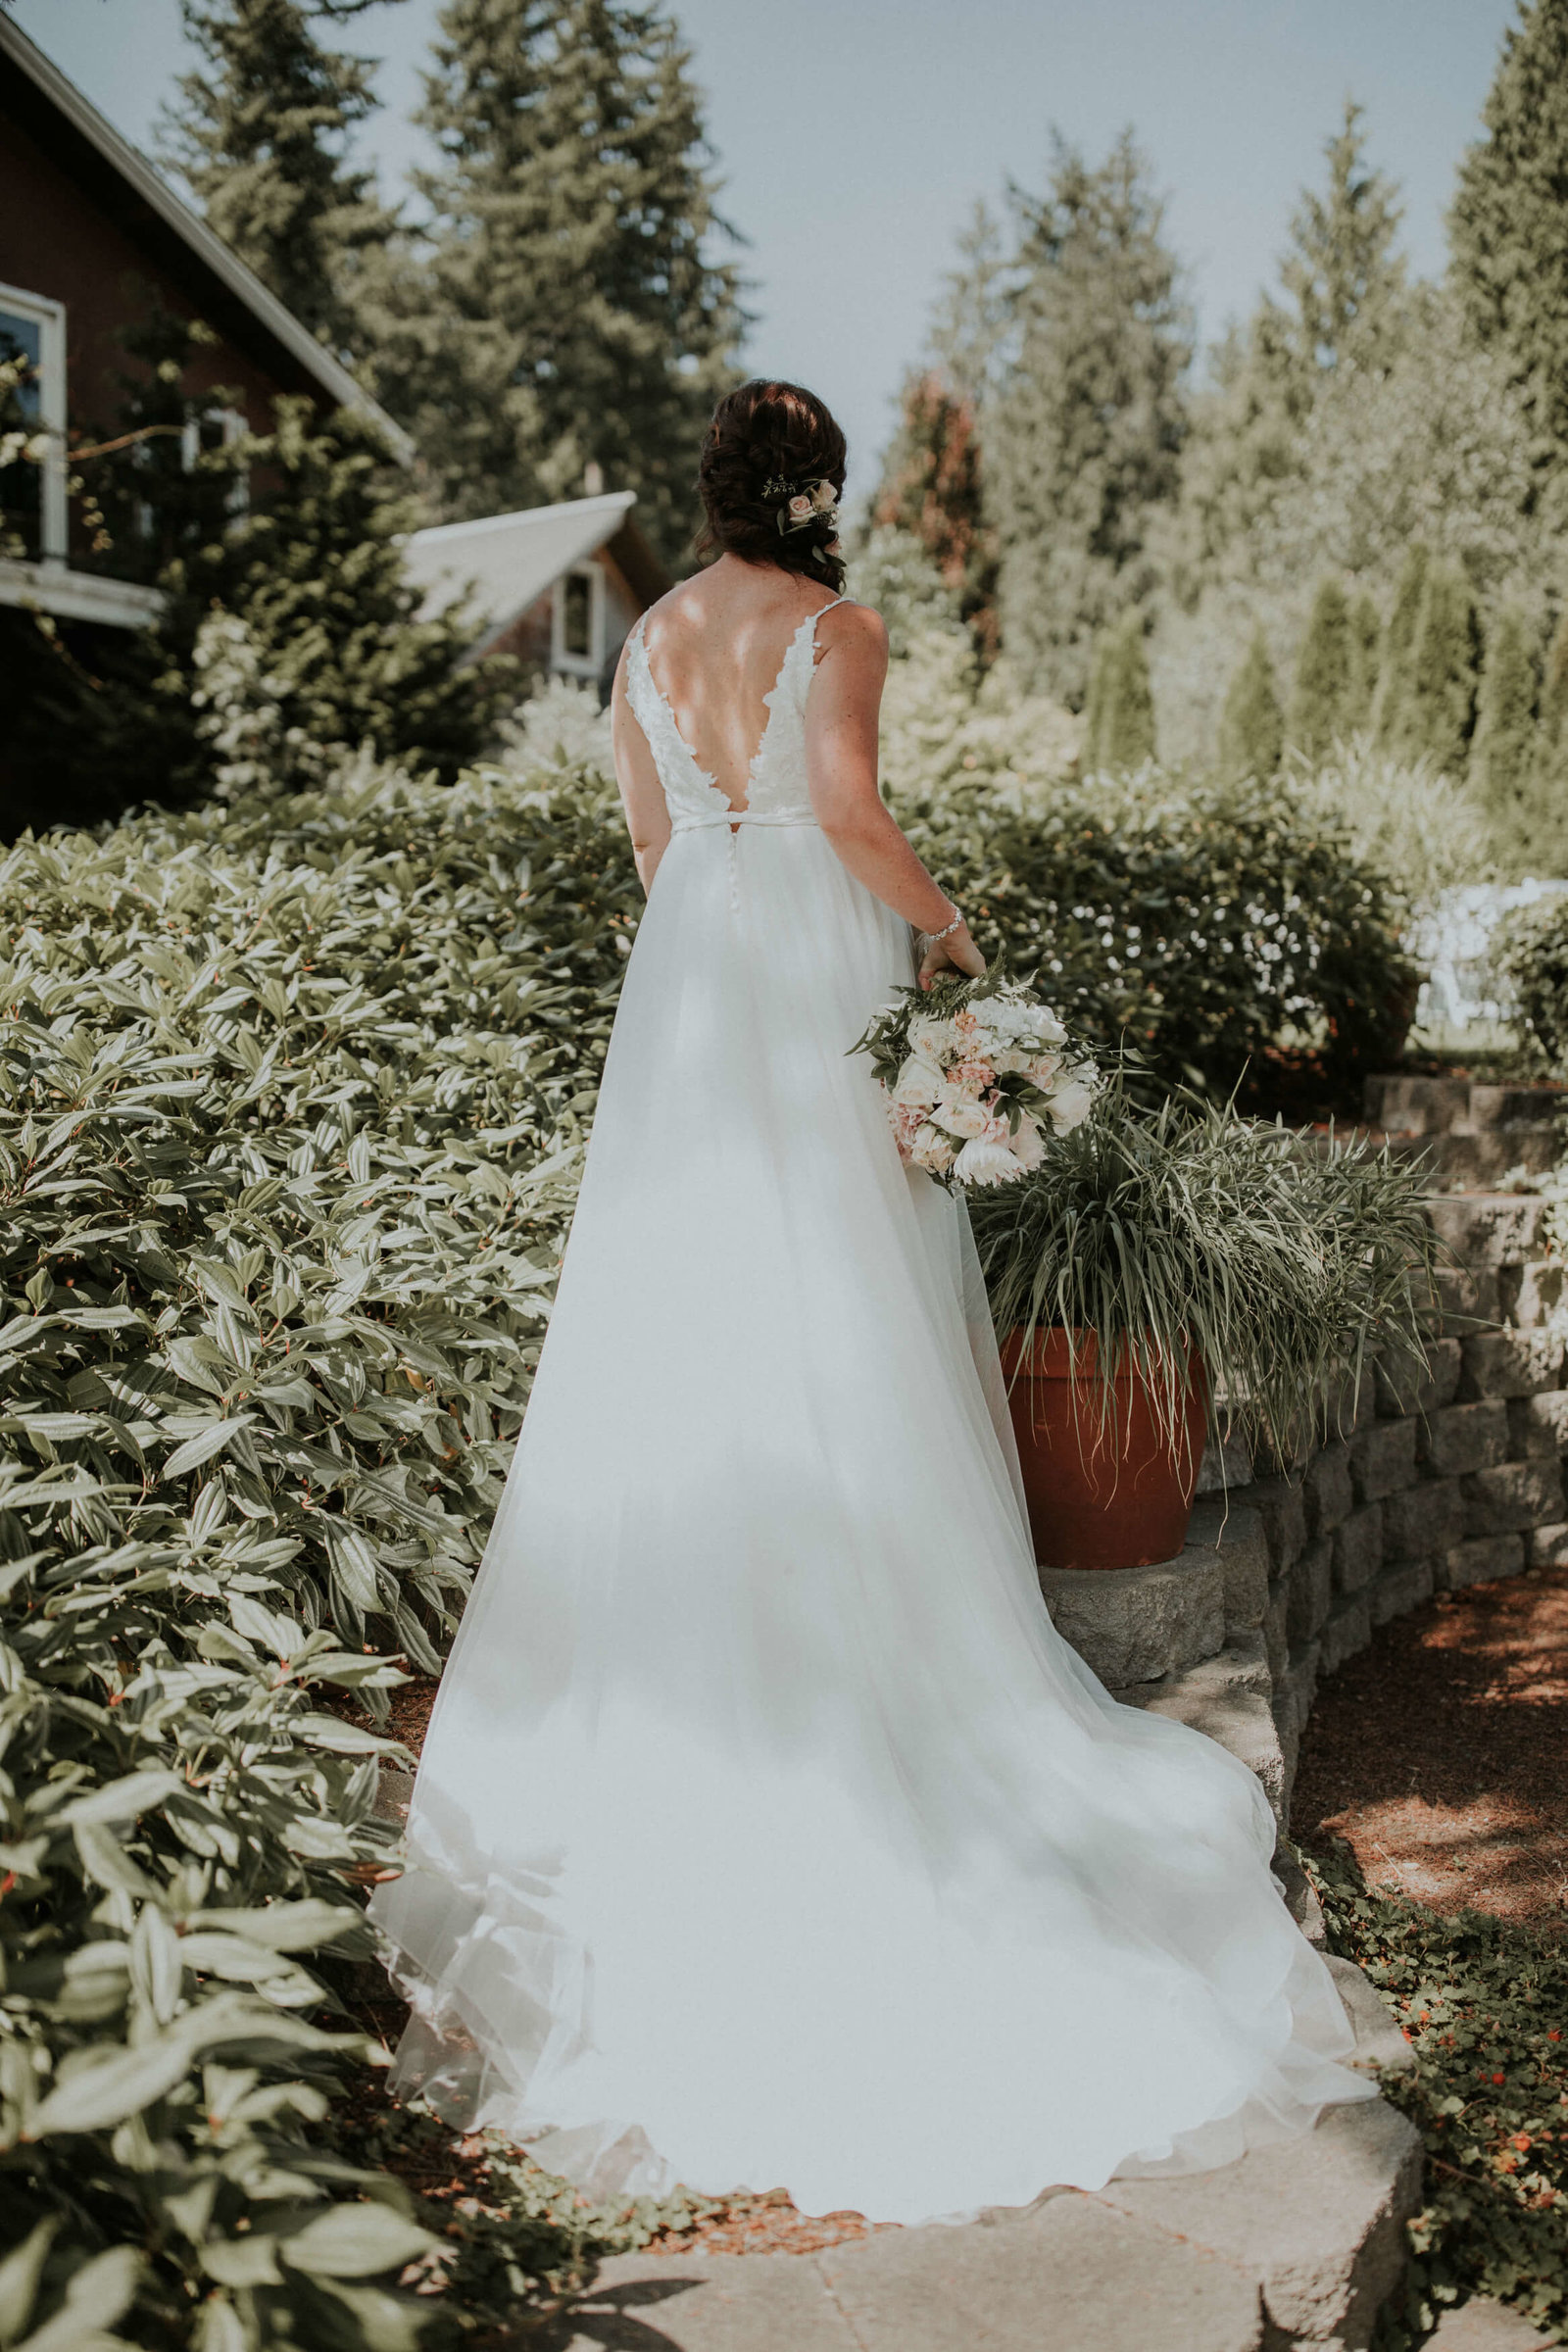 Green-Gates-at-Flowing-Lake-wedding-photos-by-Adina-Preston-Photography-2019-84